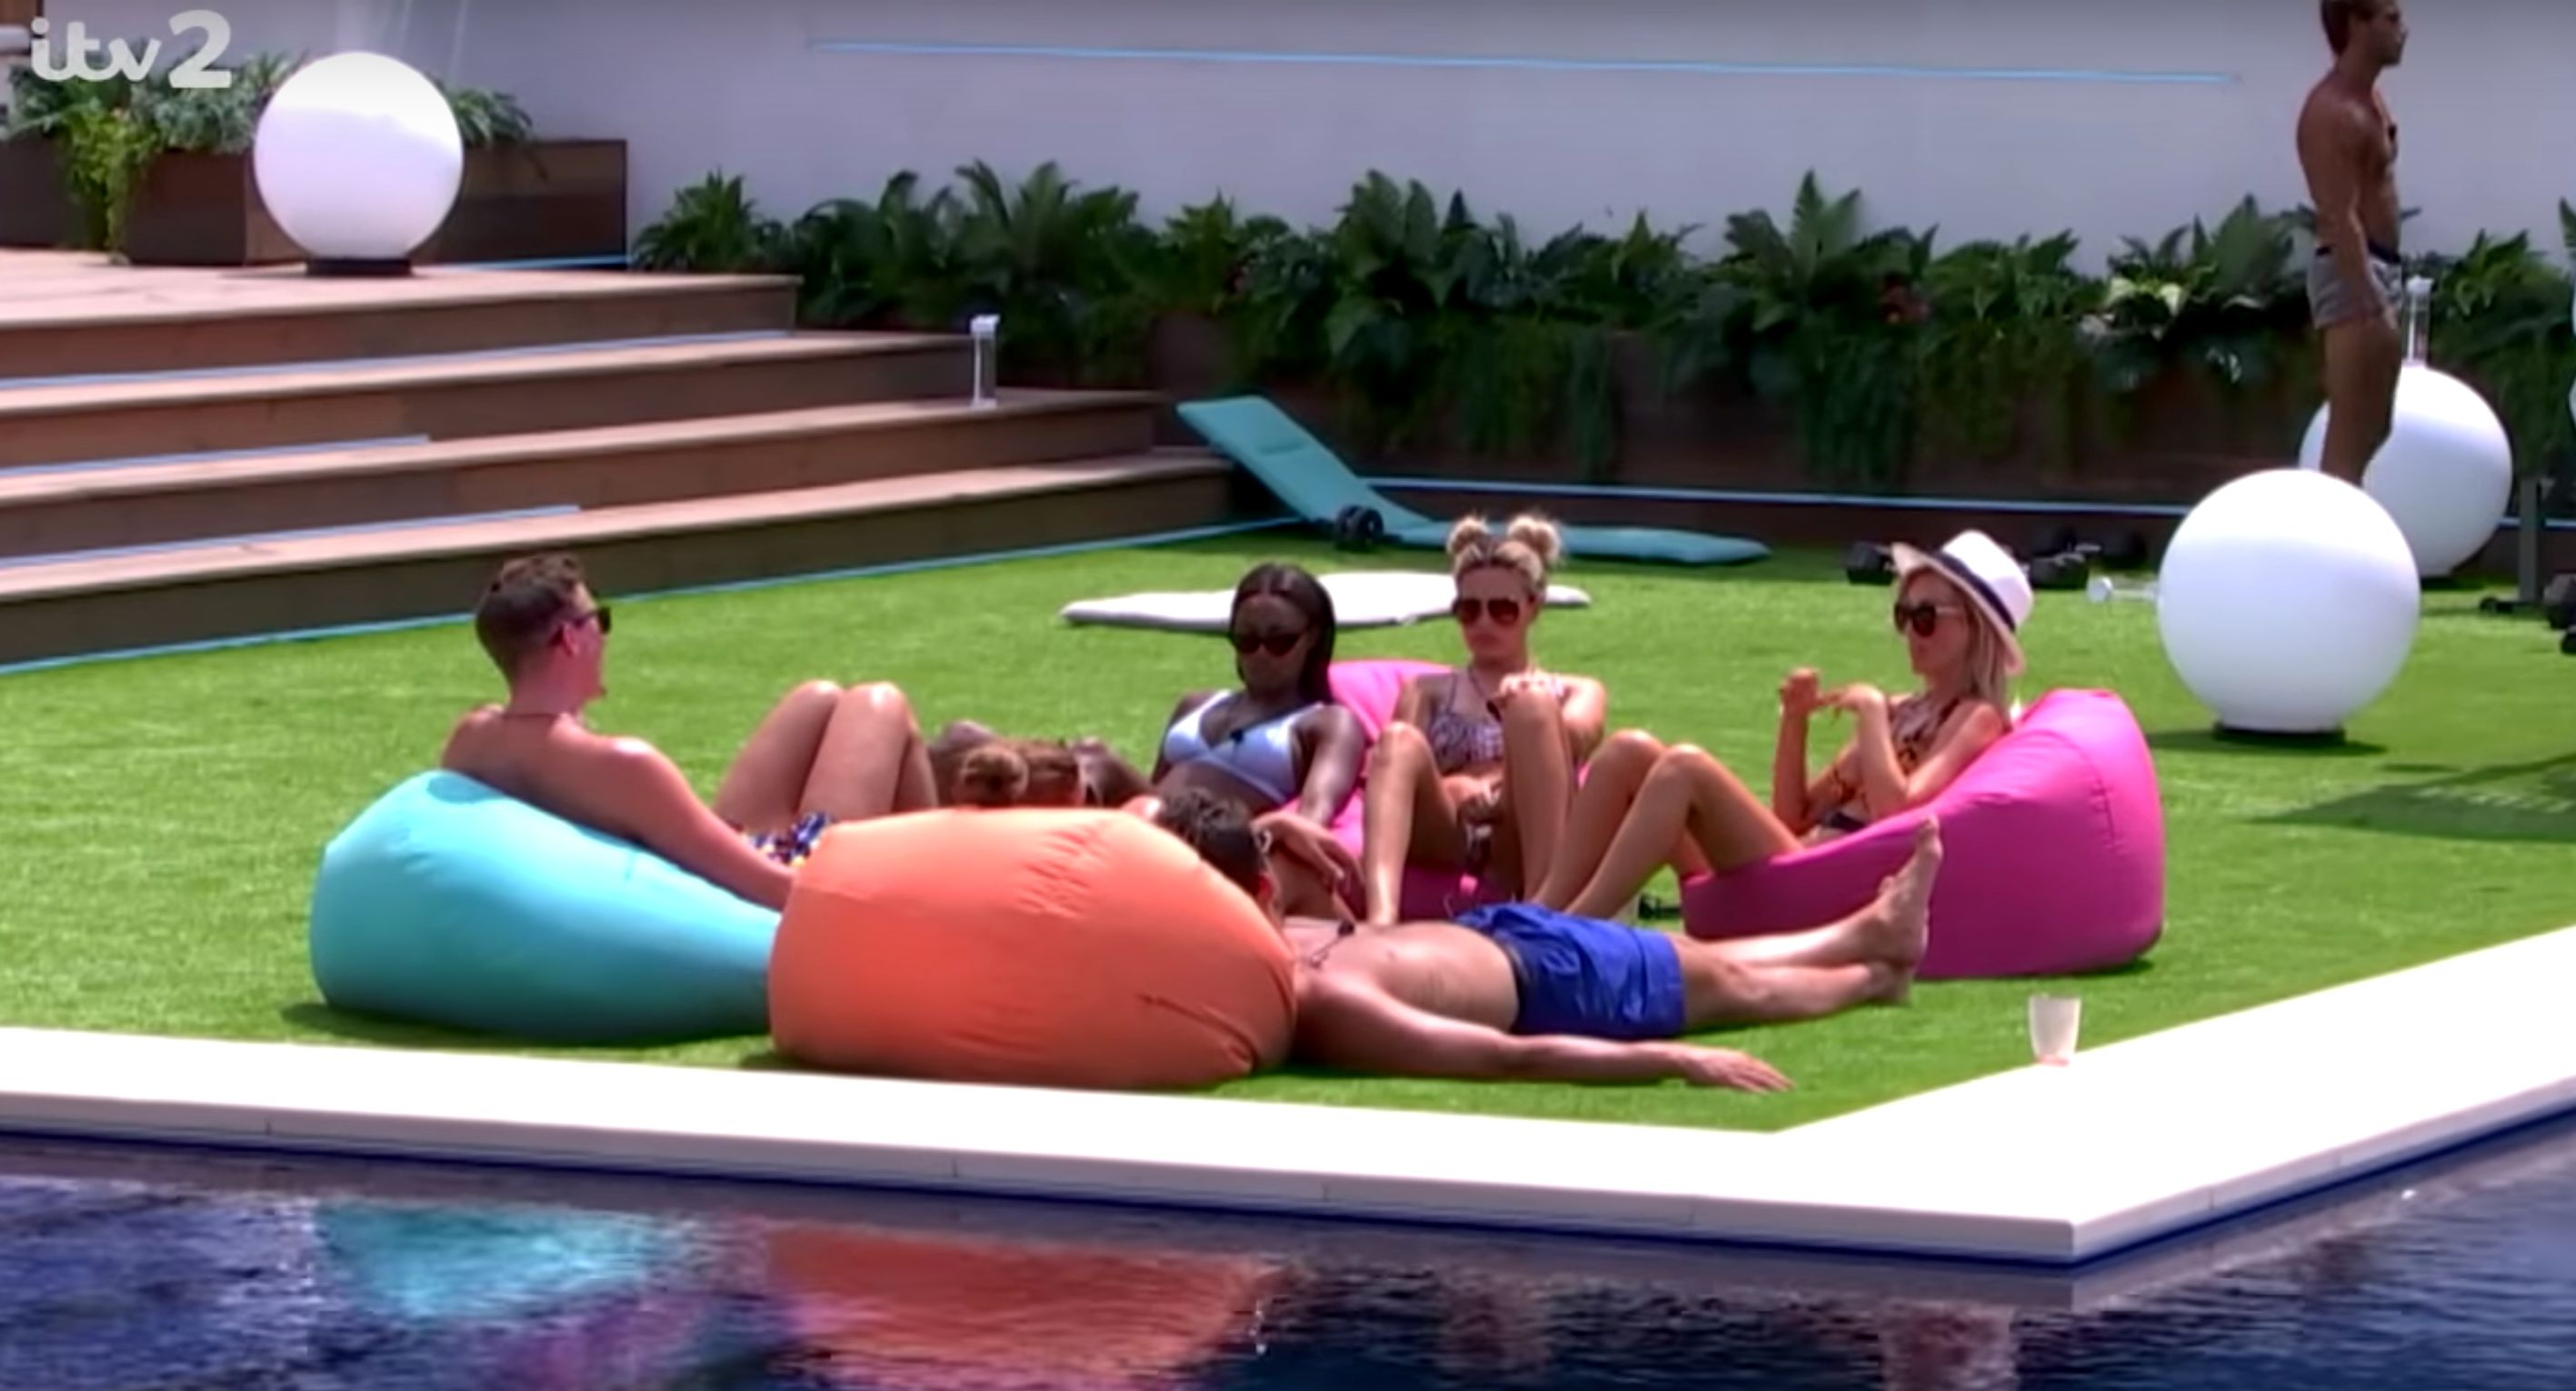 Should Cosmetic Surgery Ads Be Banned During 'Love Island'? Here's Why Health Experts Think